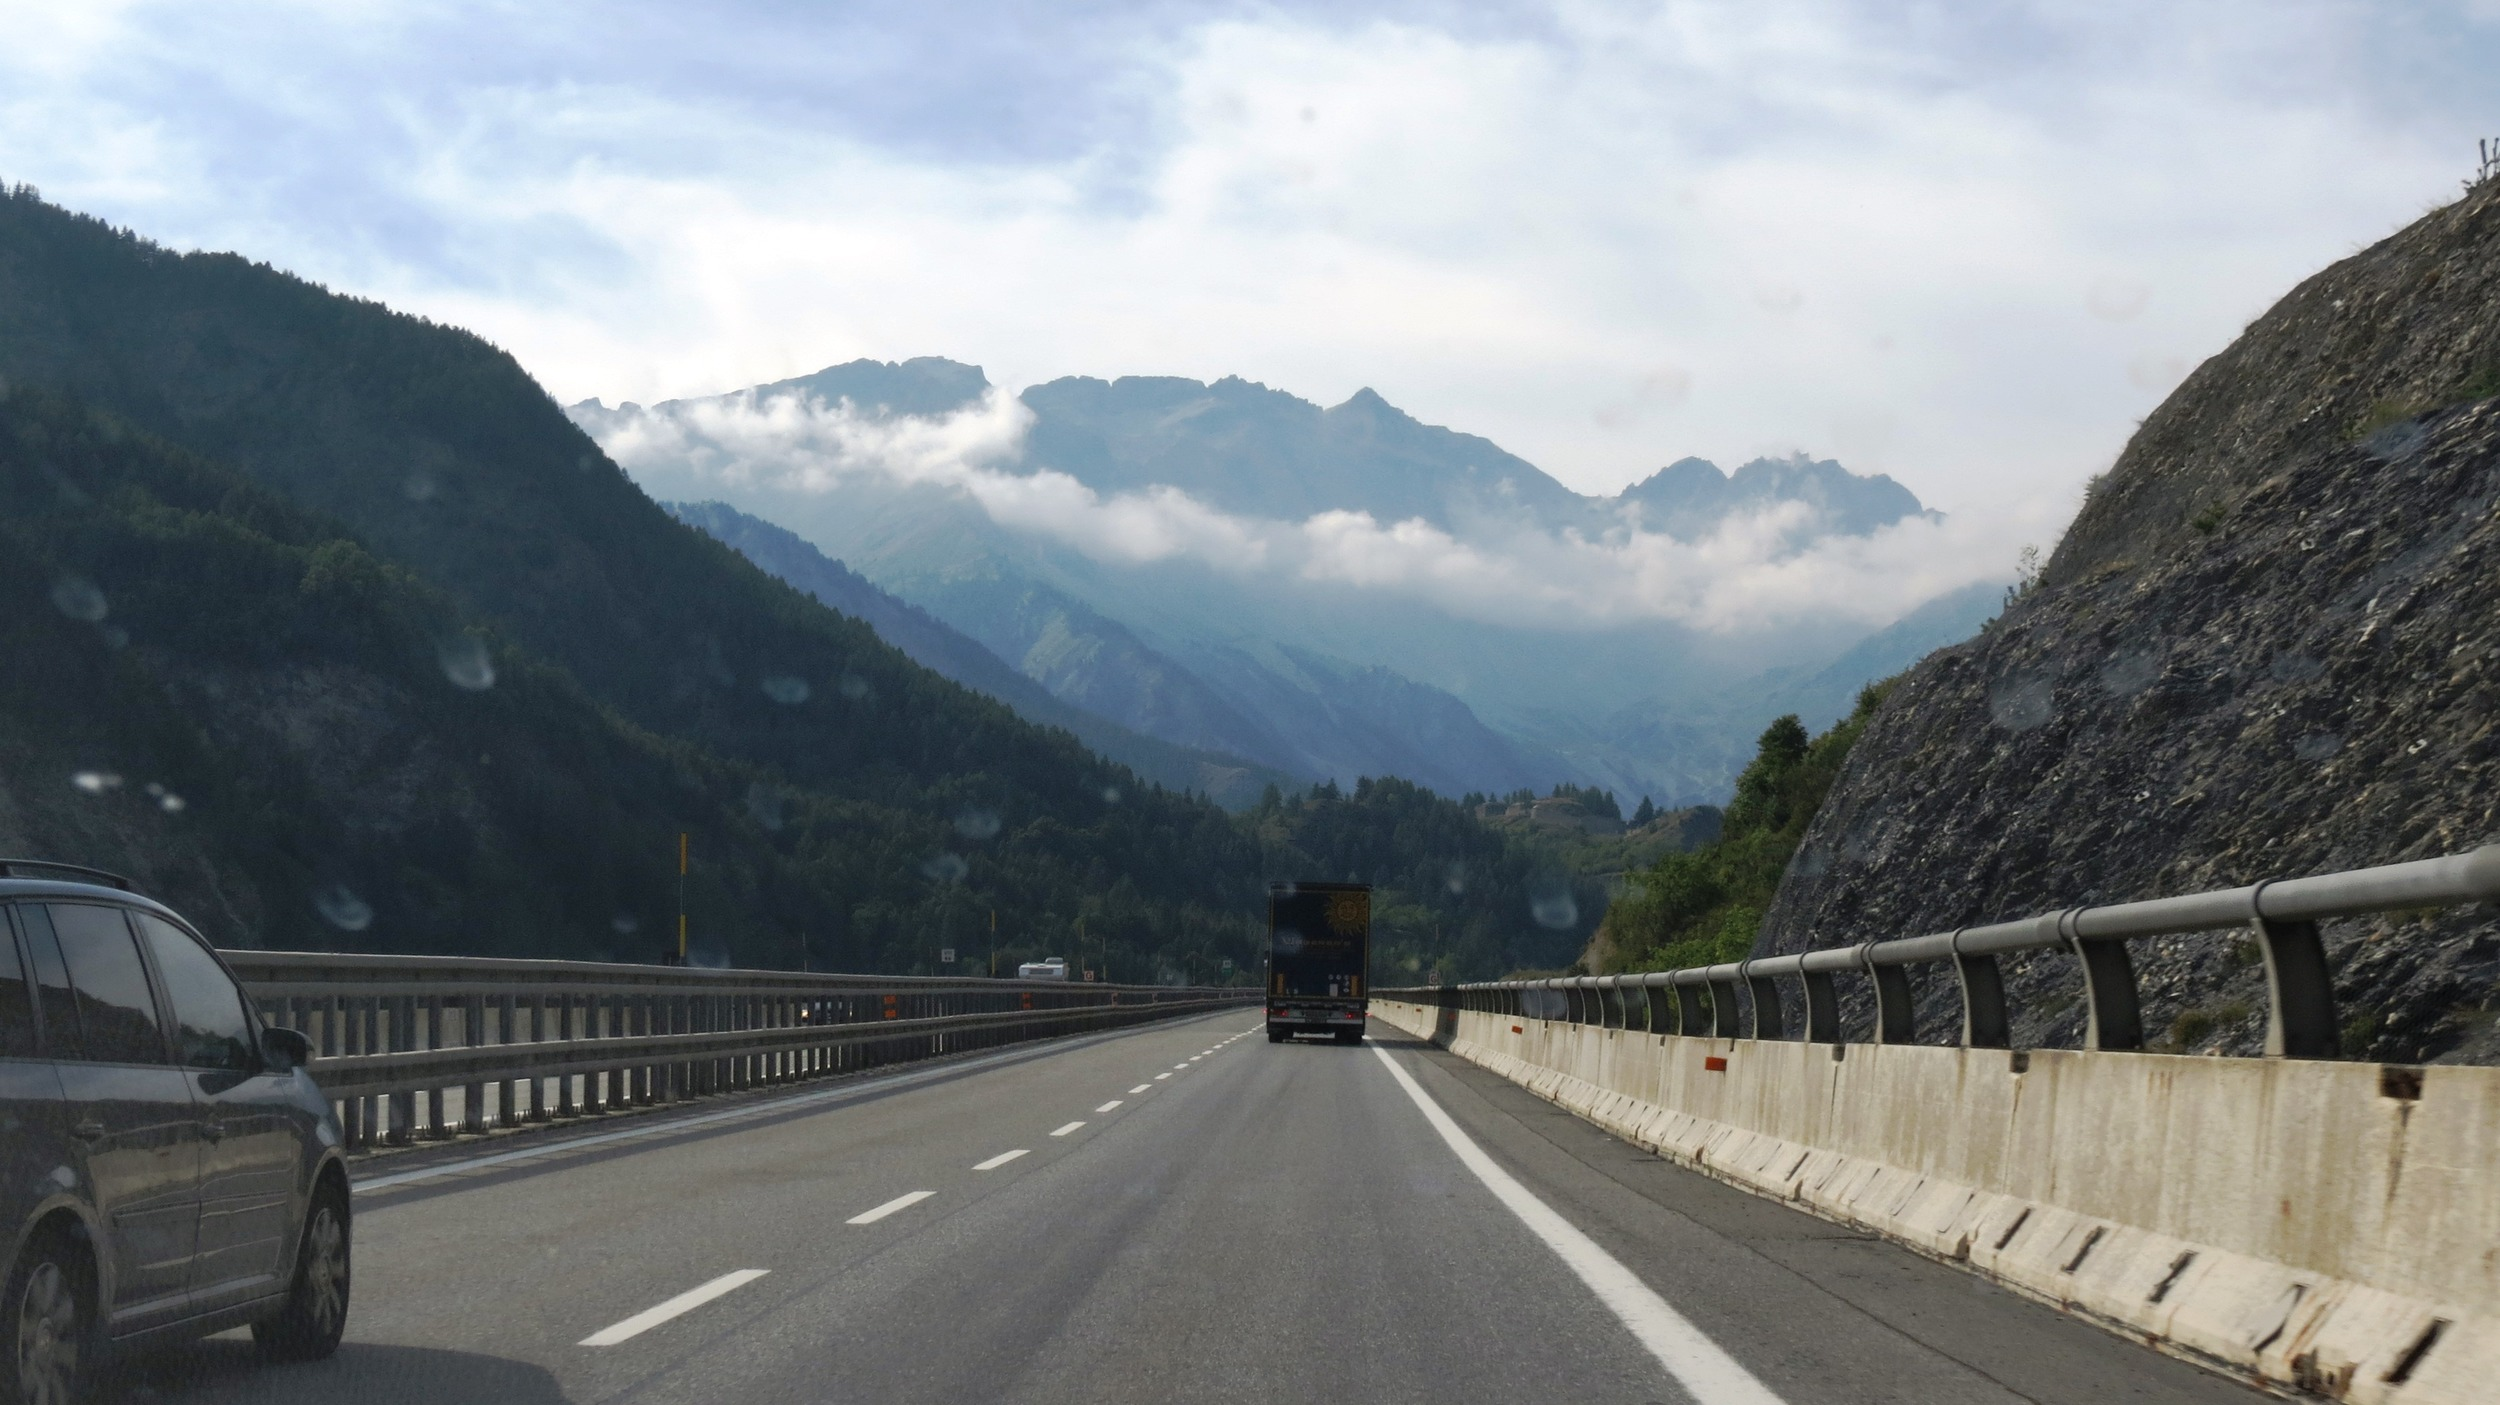 View of the Italian Alps on our way to France.